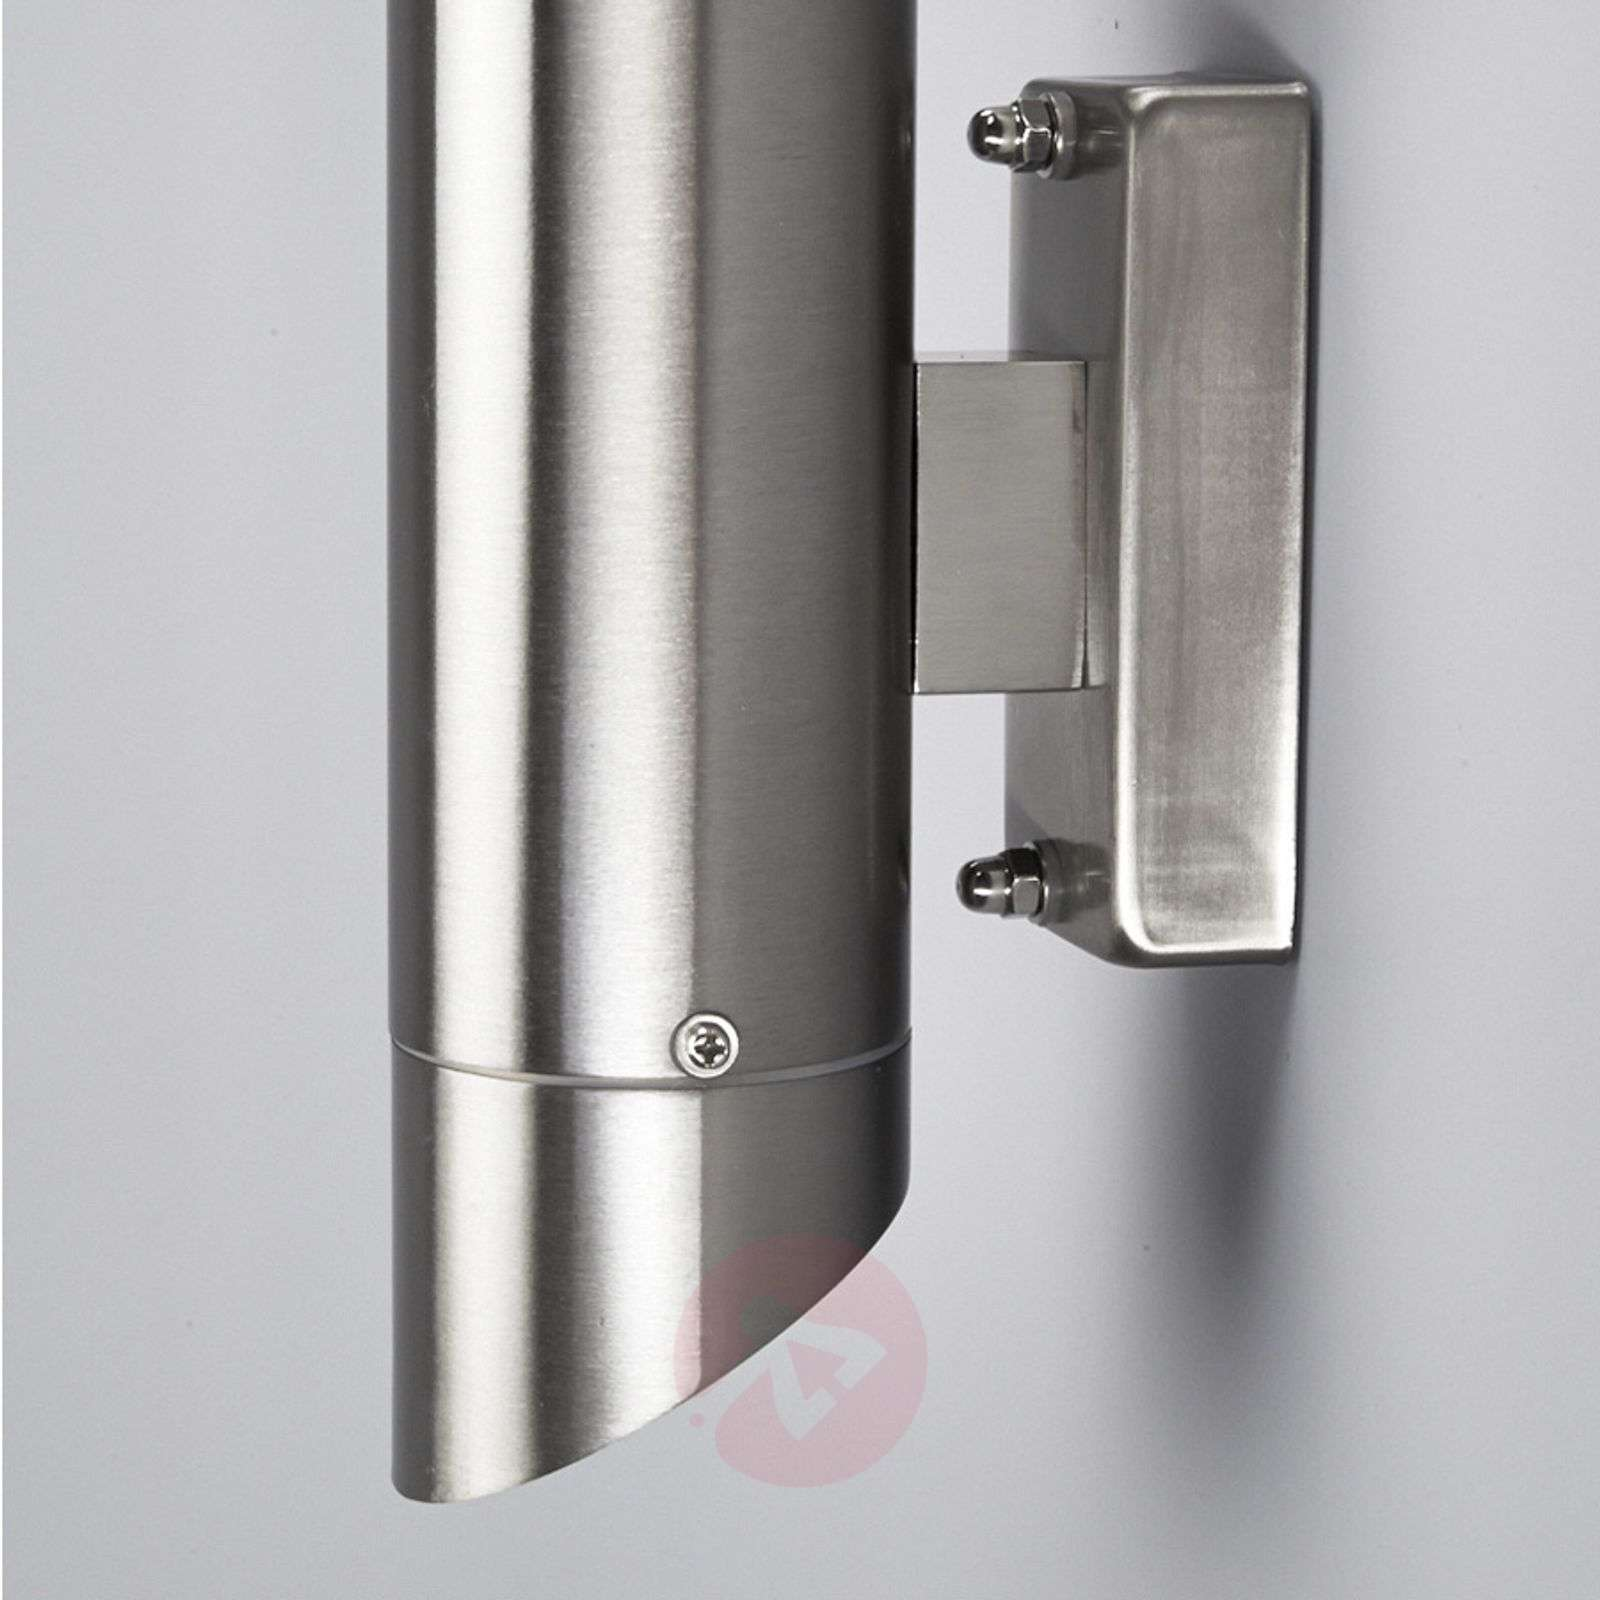 Frederik Outside Wall Light Stainless Steel-9630012-01